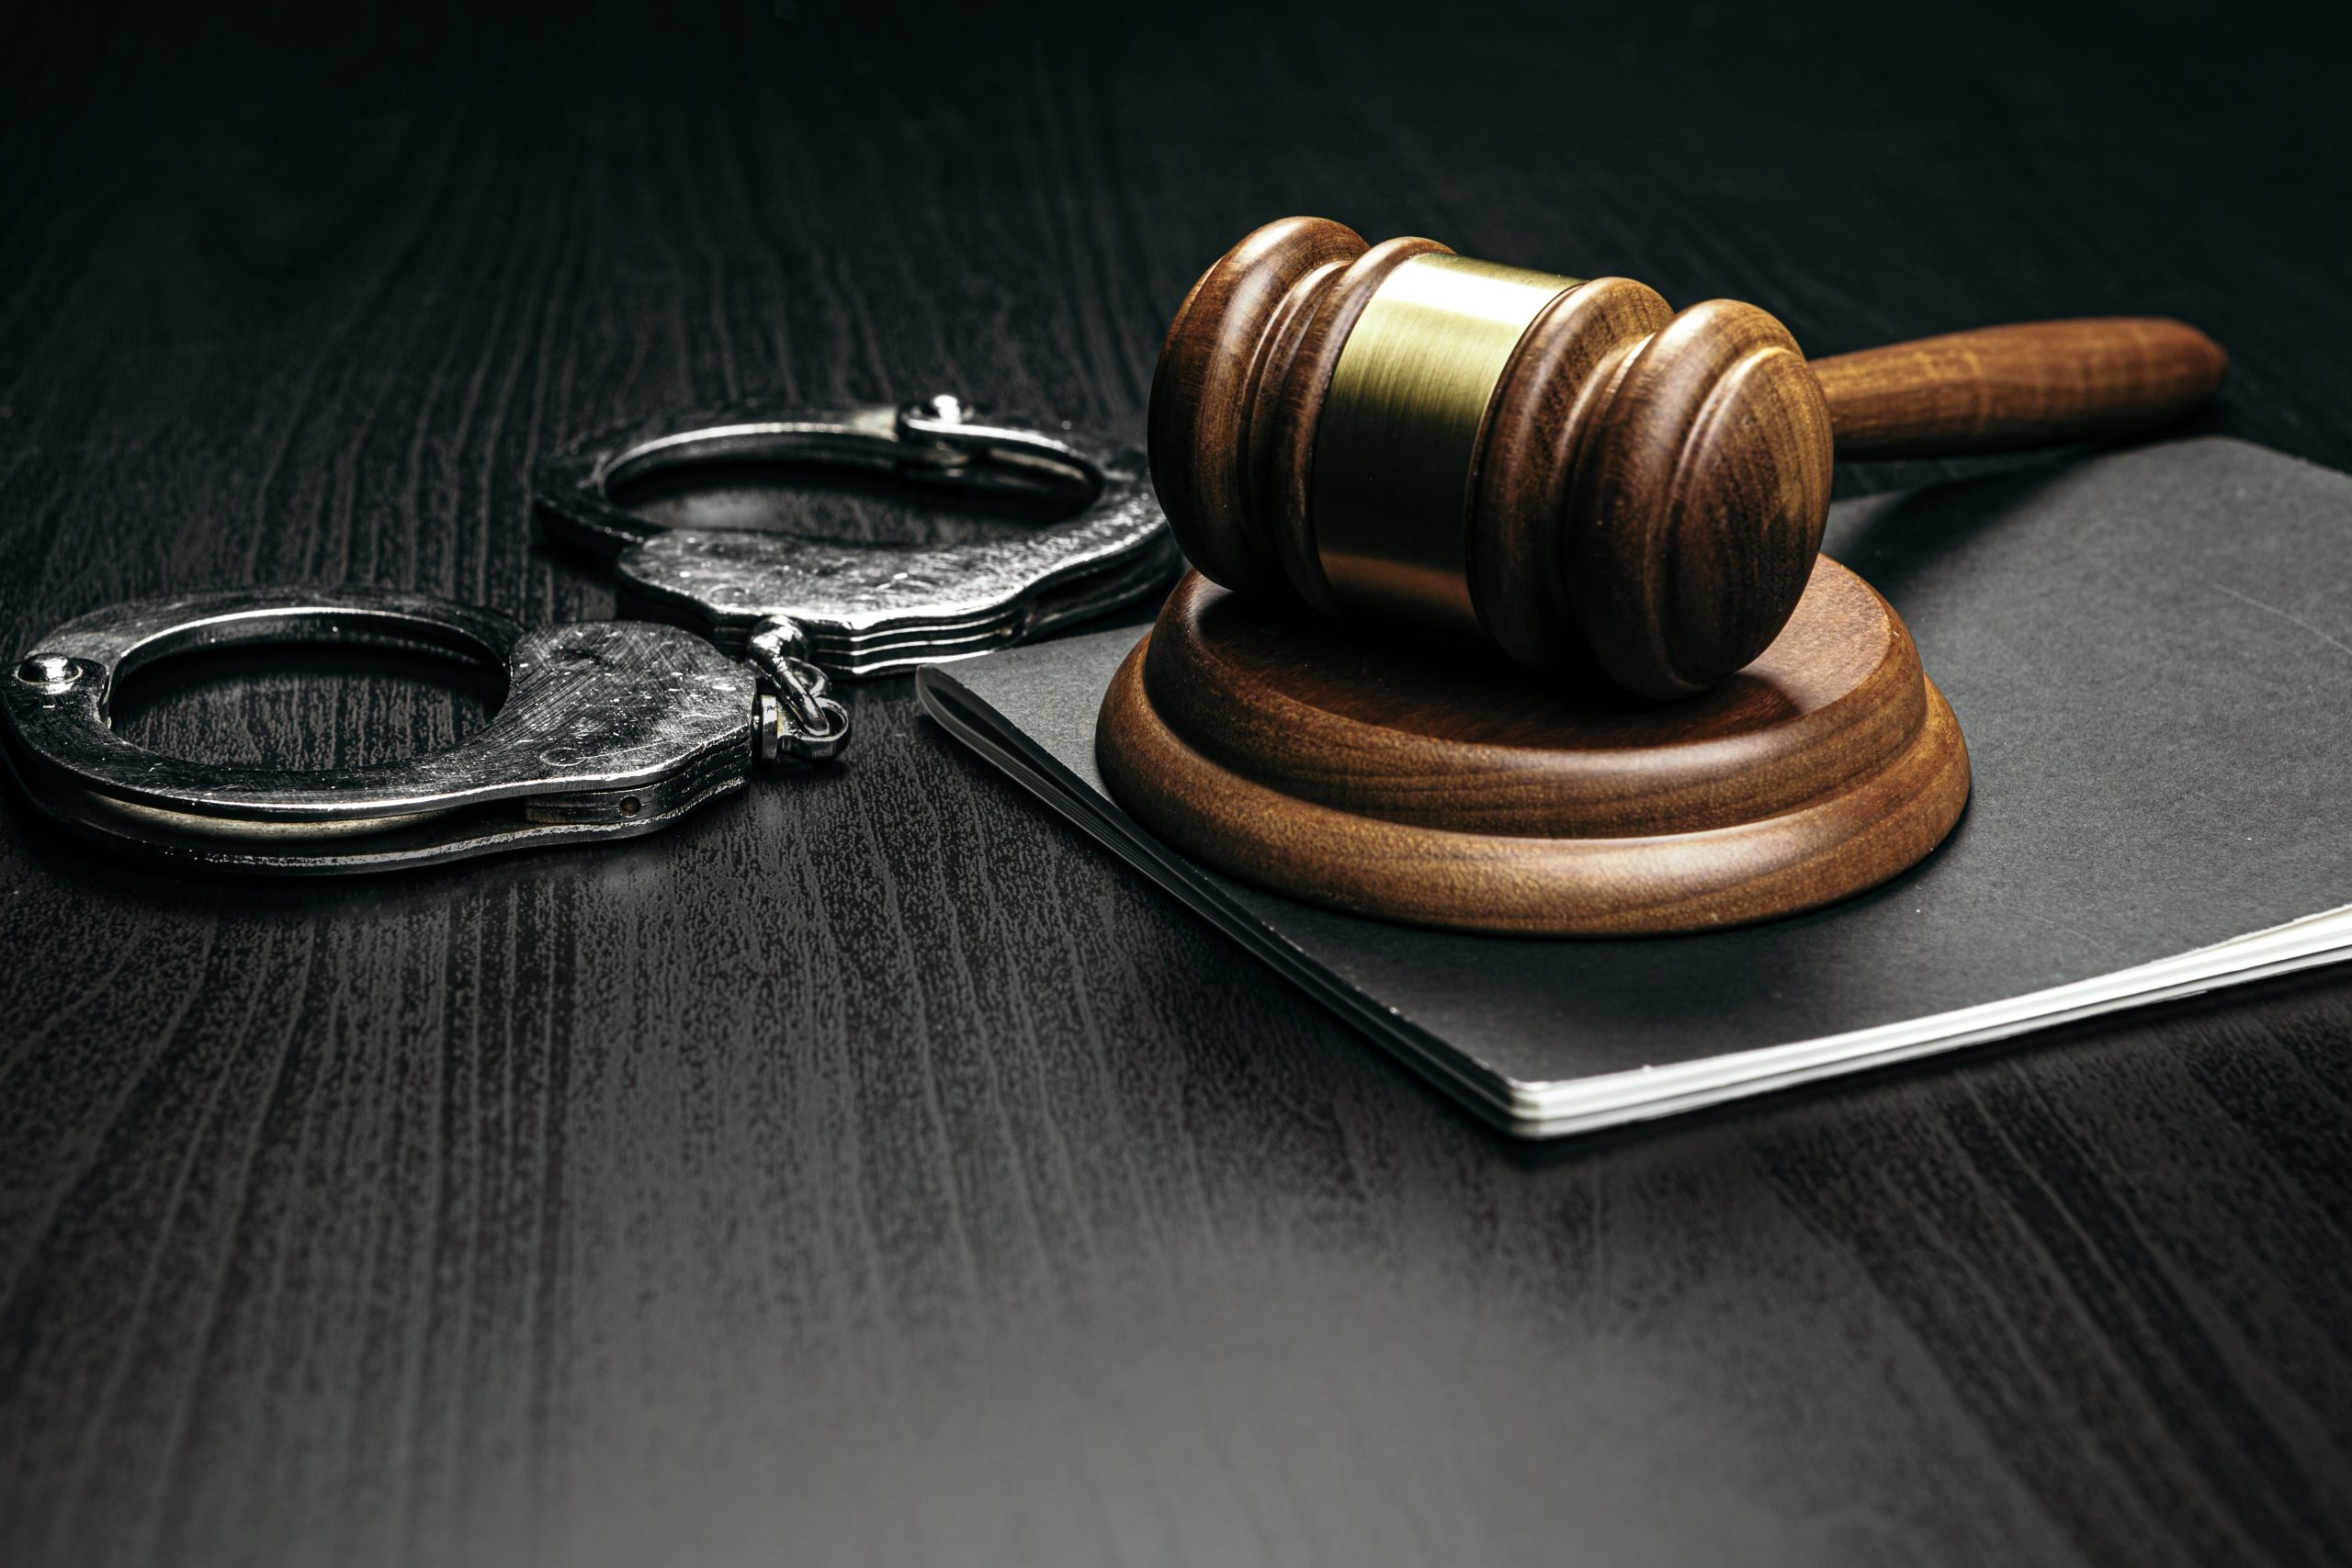 judge-gavel-with-handcuffs-on-wooden-table-35PKRDJ